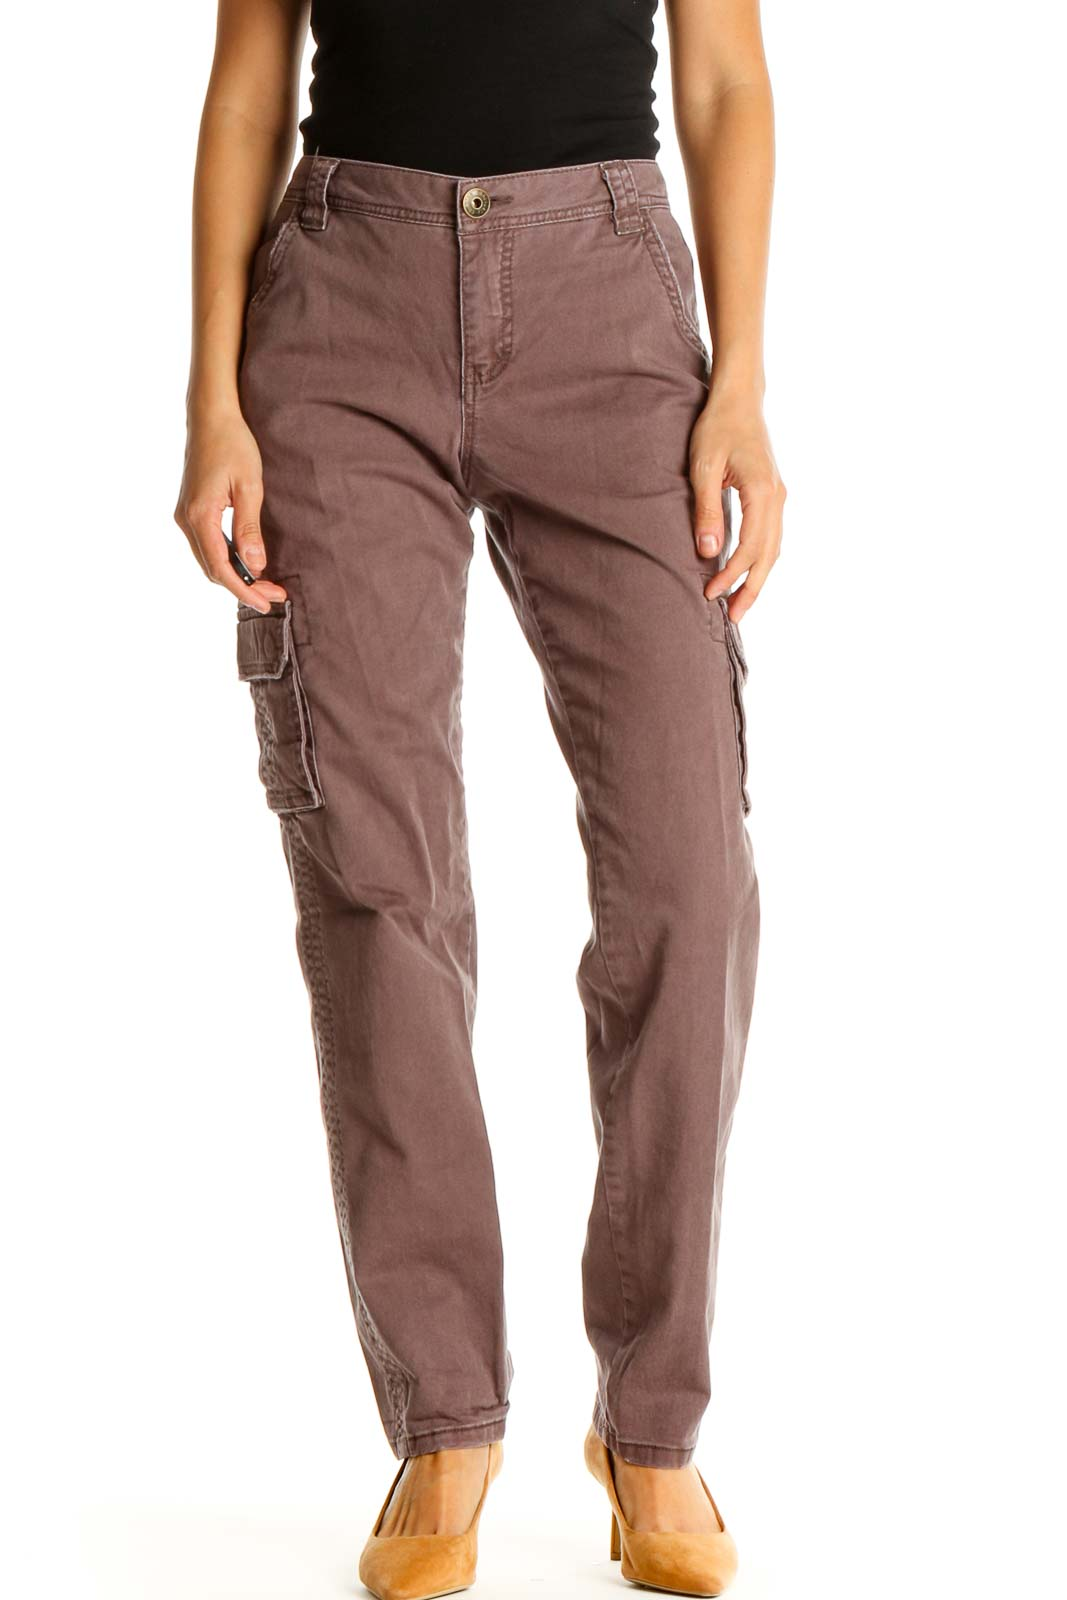 Red Casual Cargos Pants Front